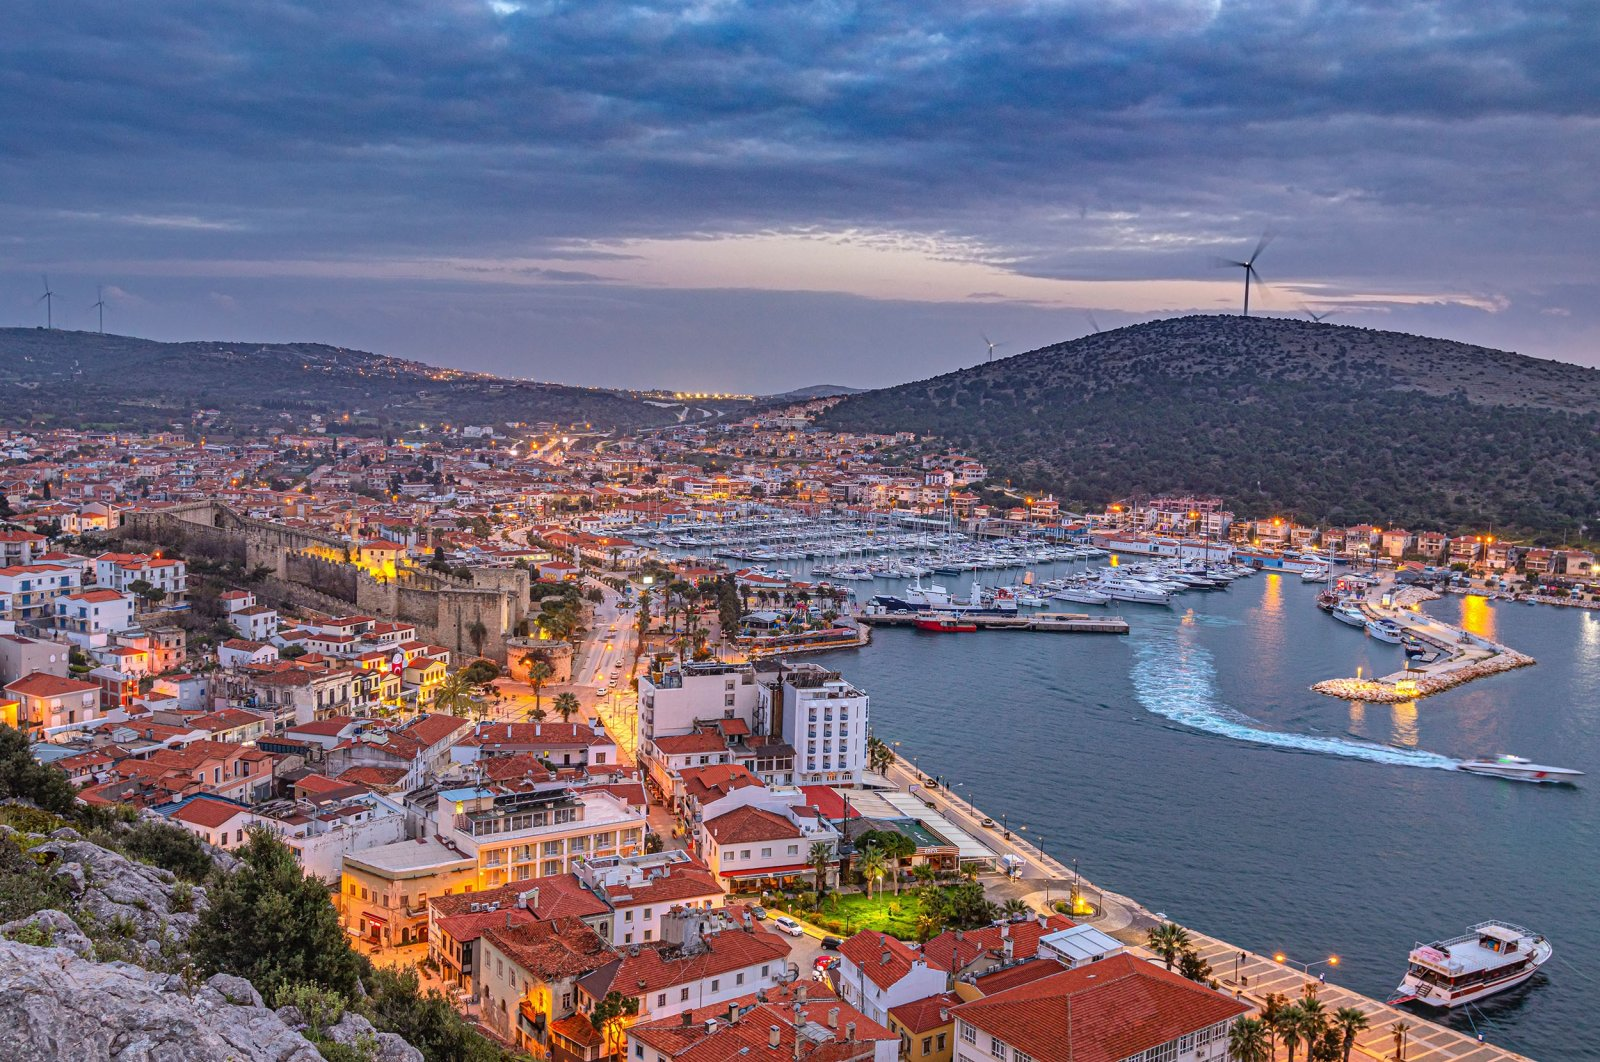 An aerial view of thecoastal town ofÇeşme, in Izmir, Turkey, Aug. 23, 2020. (Shutterstock Photo)